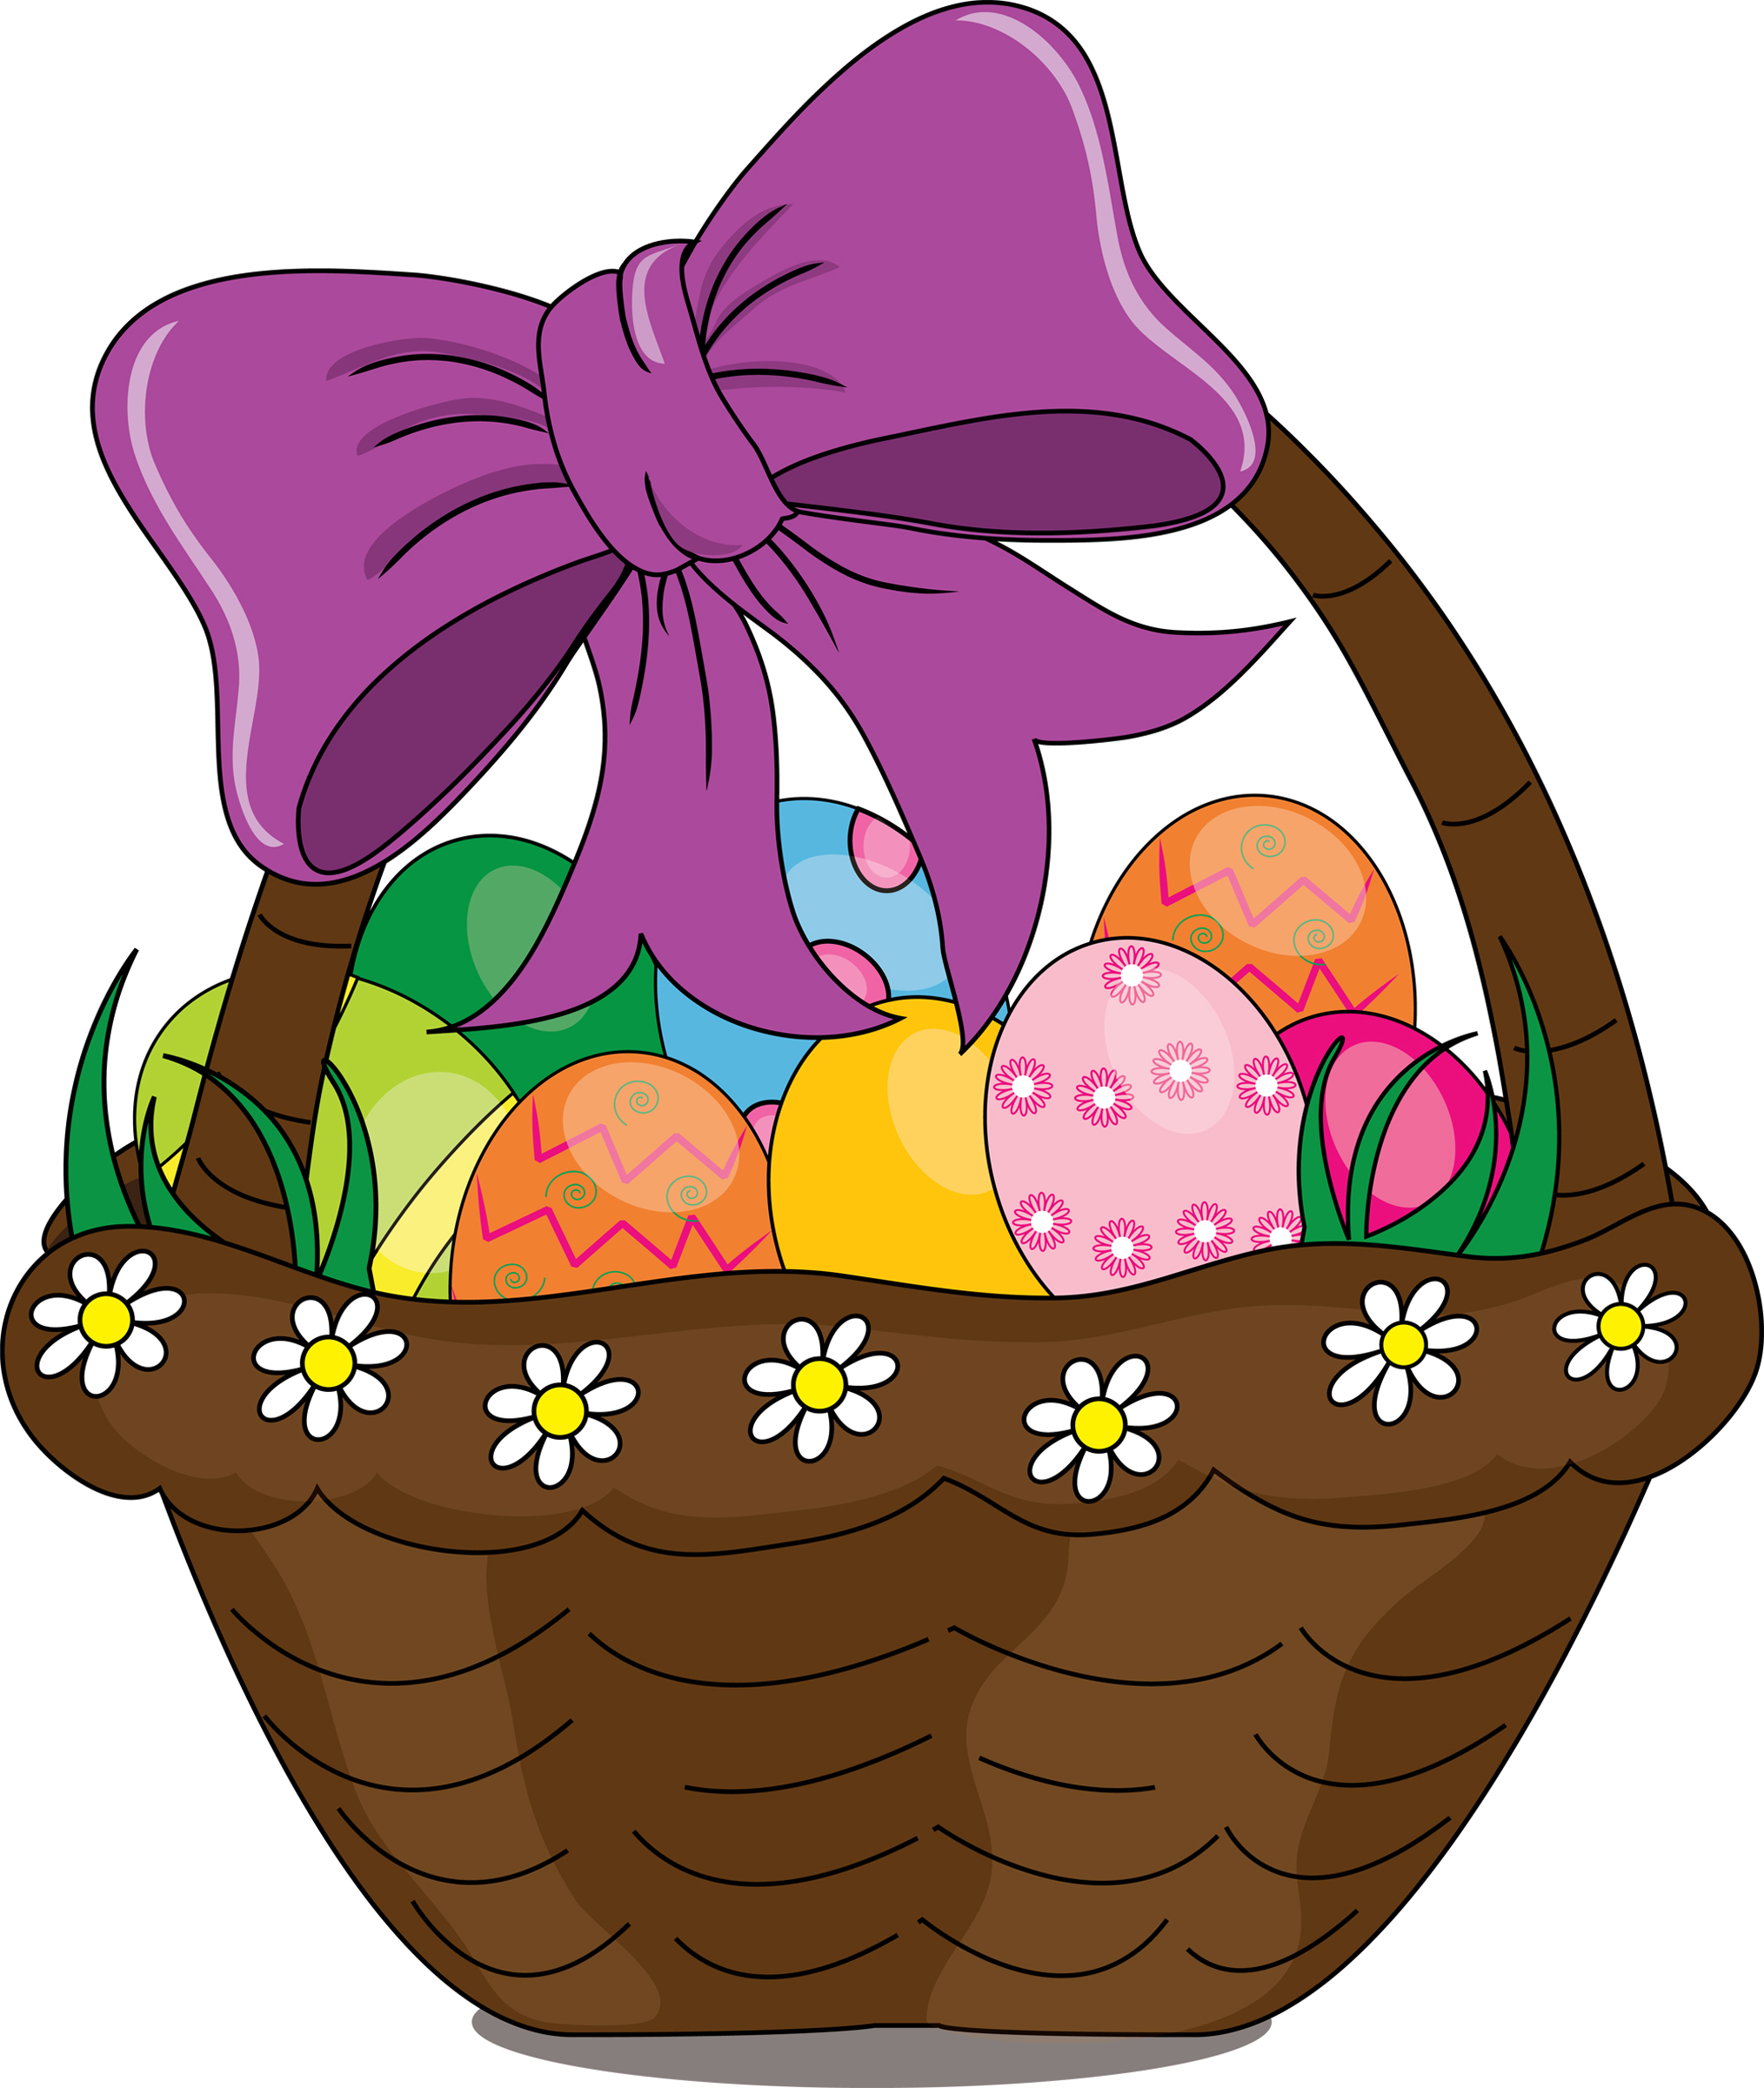 Easter basket clipart free picture free library Easter basket clipart - ClipartFest picture free library